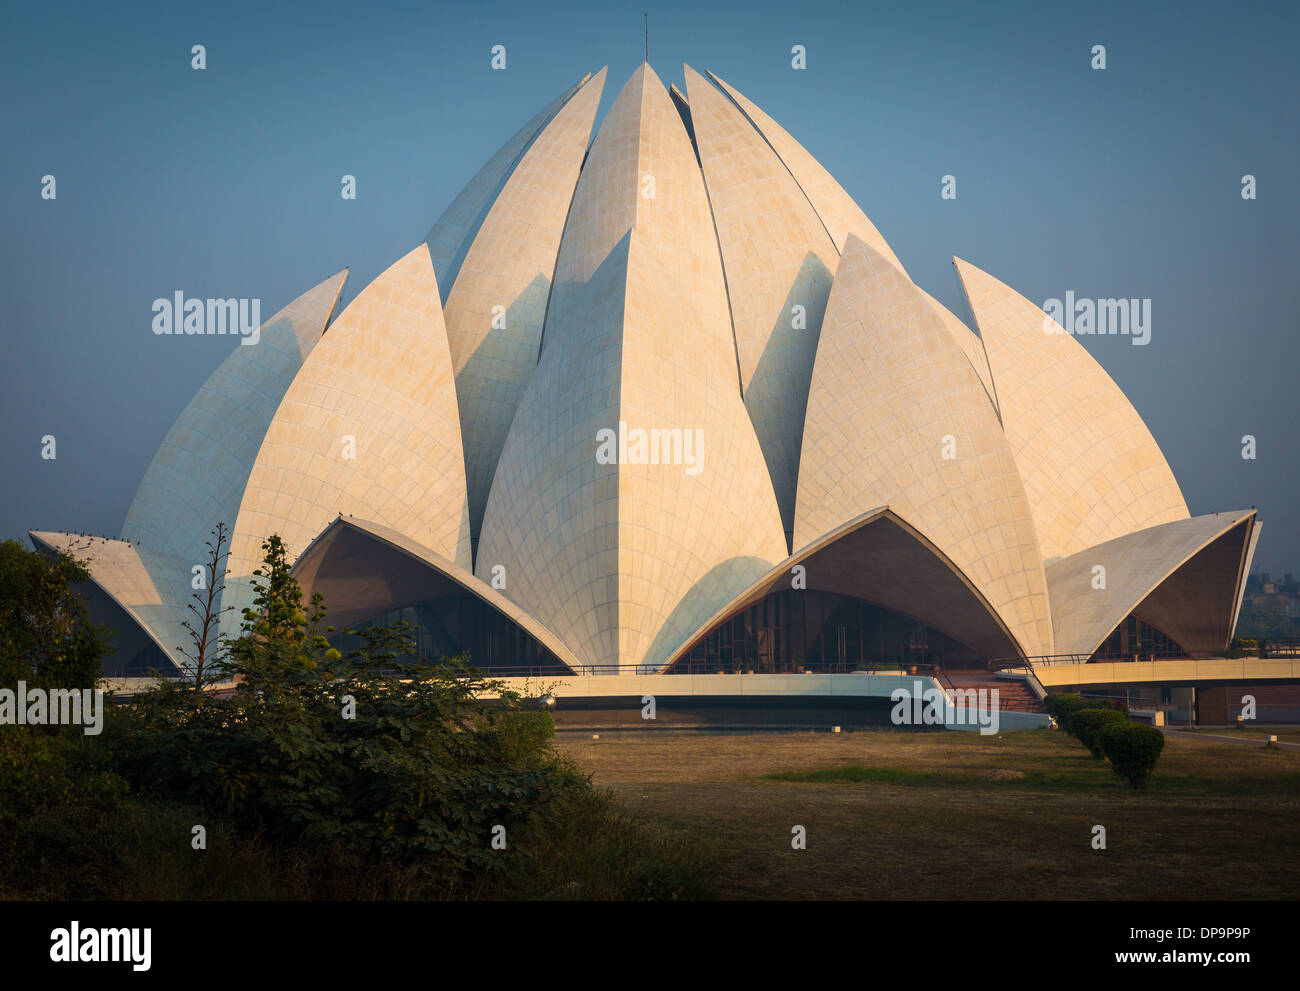 The Lotus Temple, located in New Delhi, India, is a Bahá'í House of Worship - Stock Image